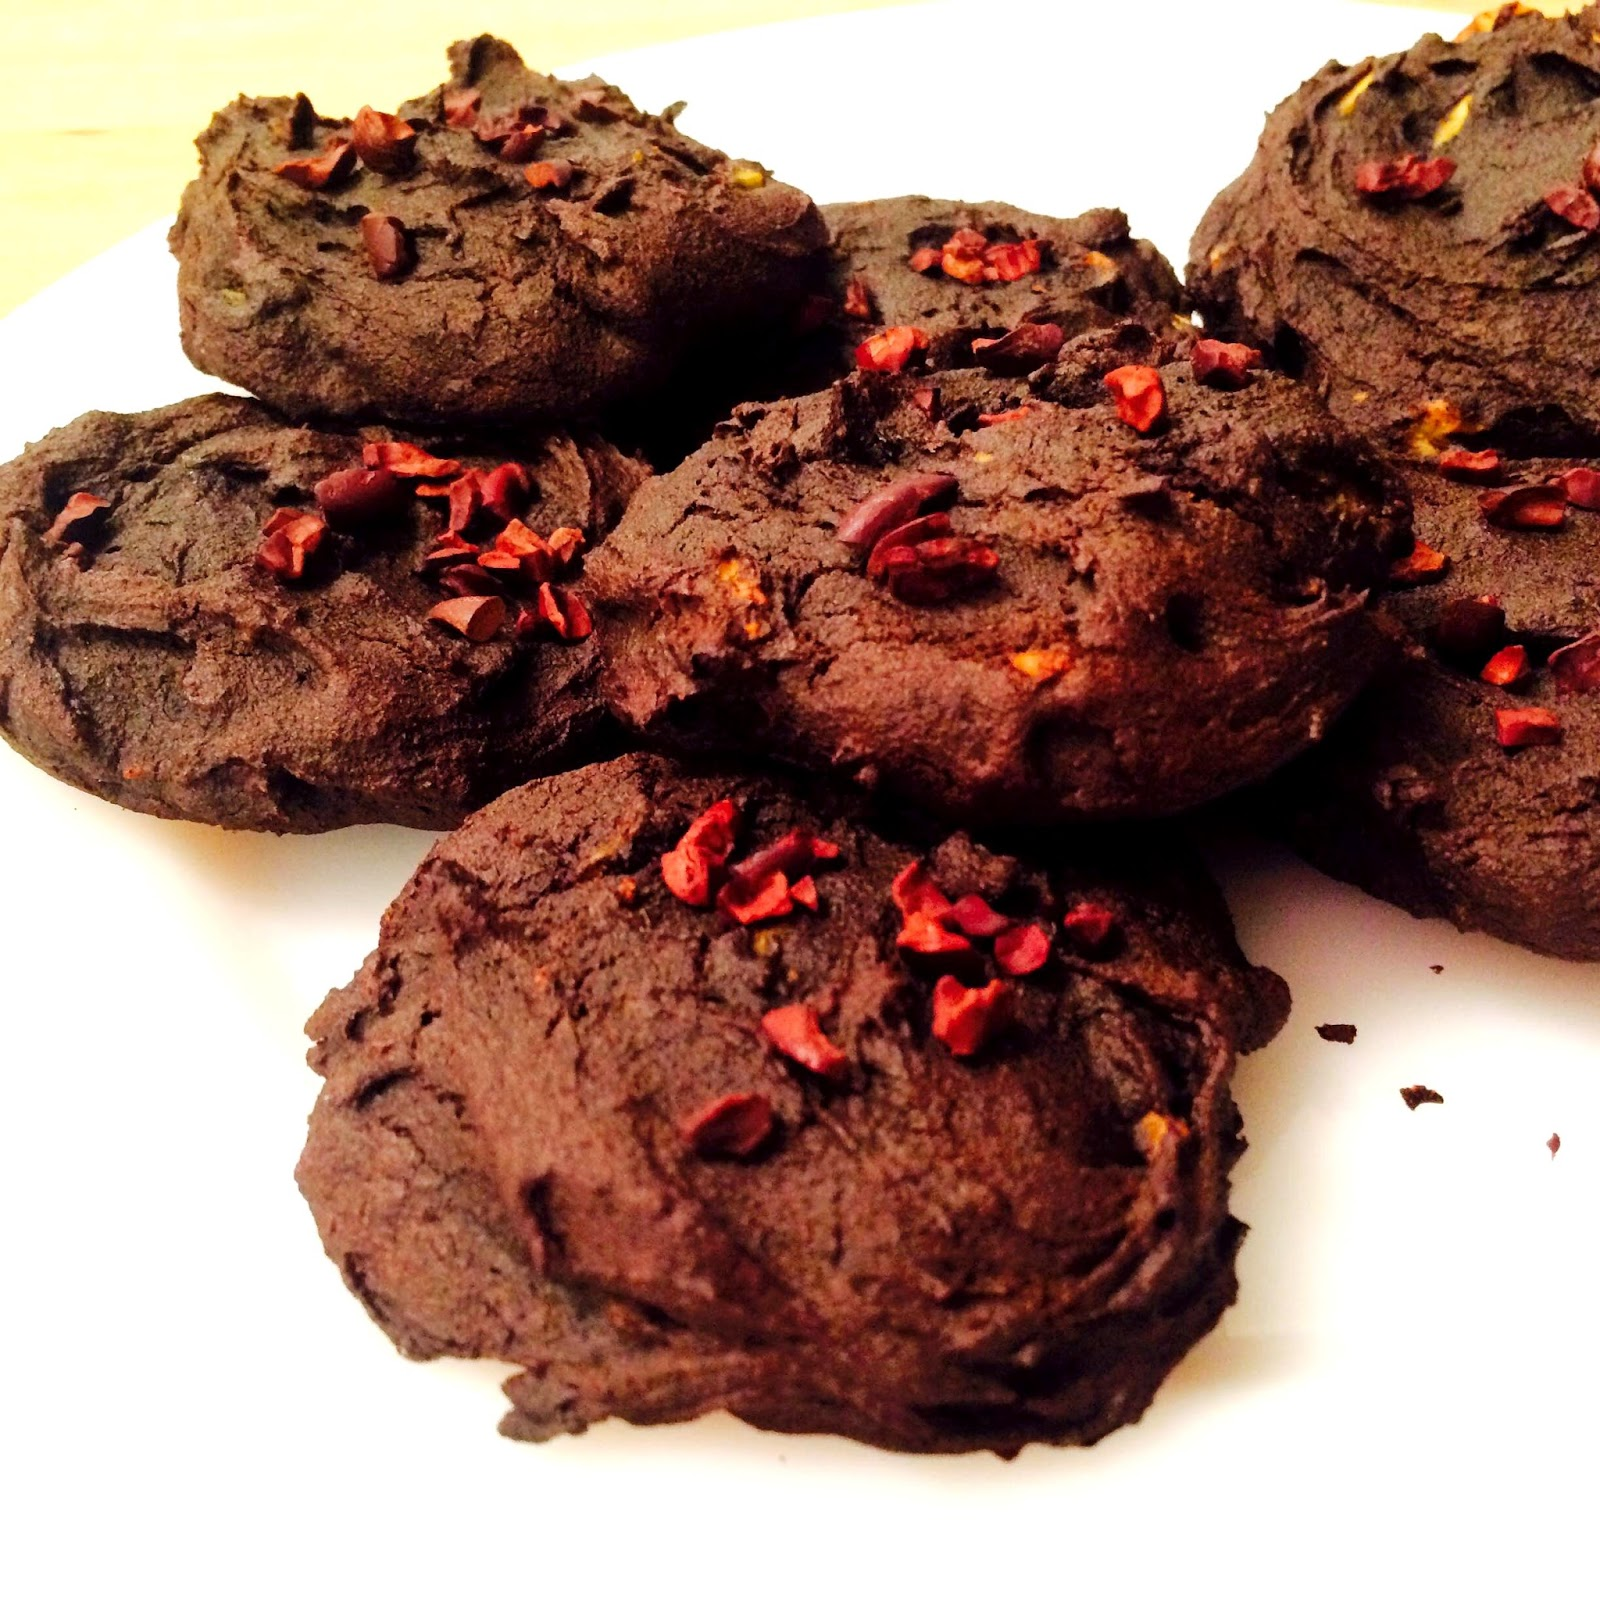 Healthy and Gluten Free Double Dark Chocolate Avocado Cookies Recipe